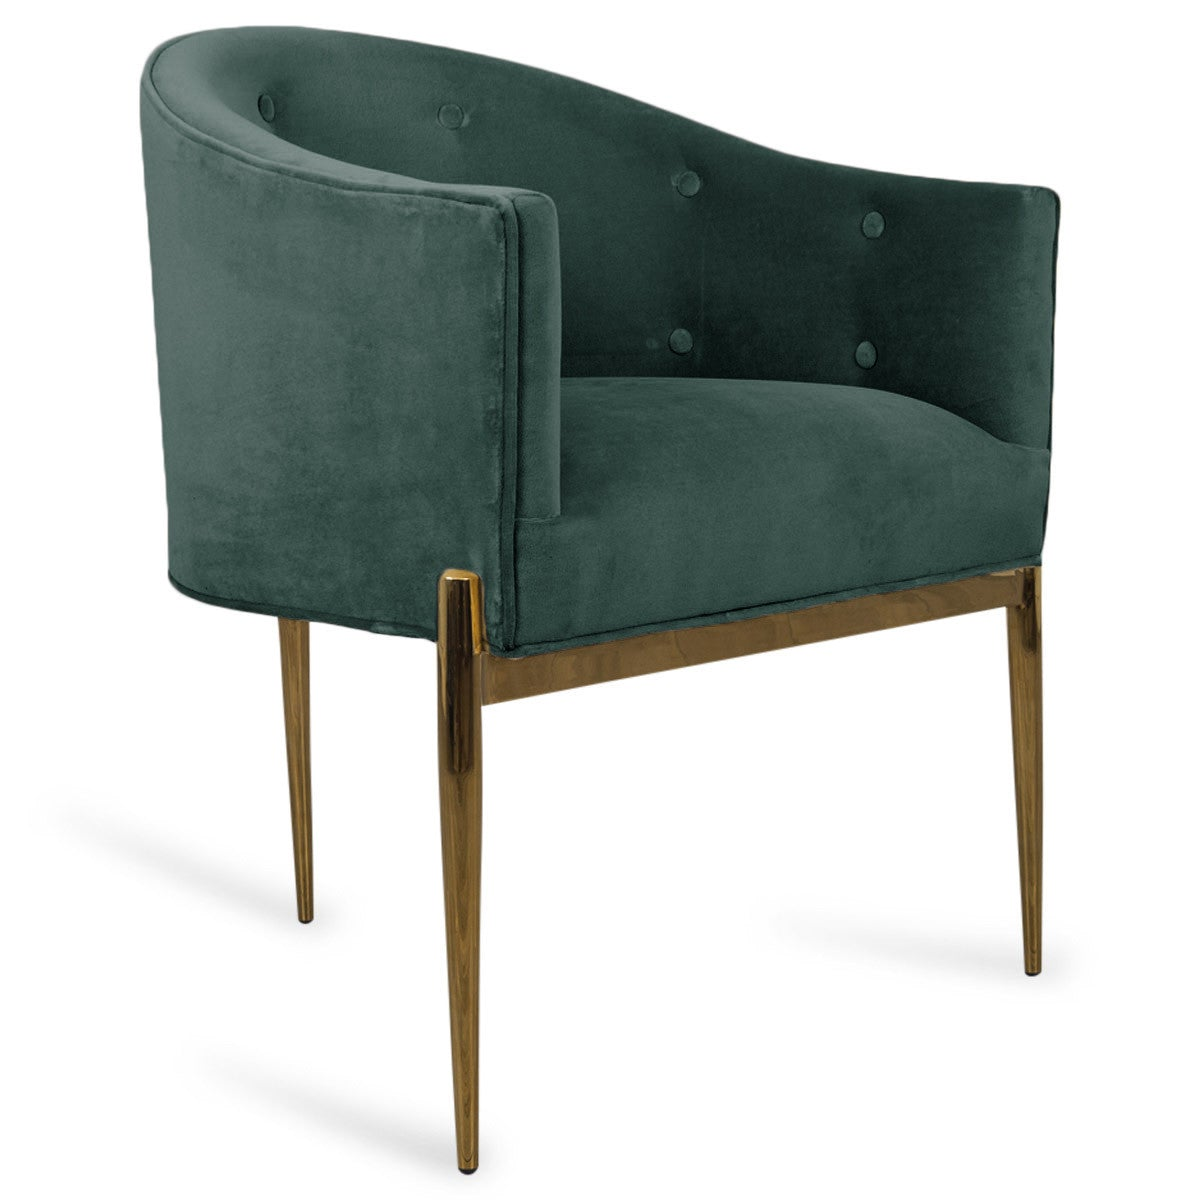 Well-liked Art Deco Velvet Dining Chair - Tufted Armchair with Brass Legs  MI34